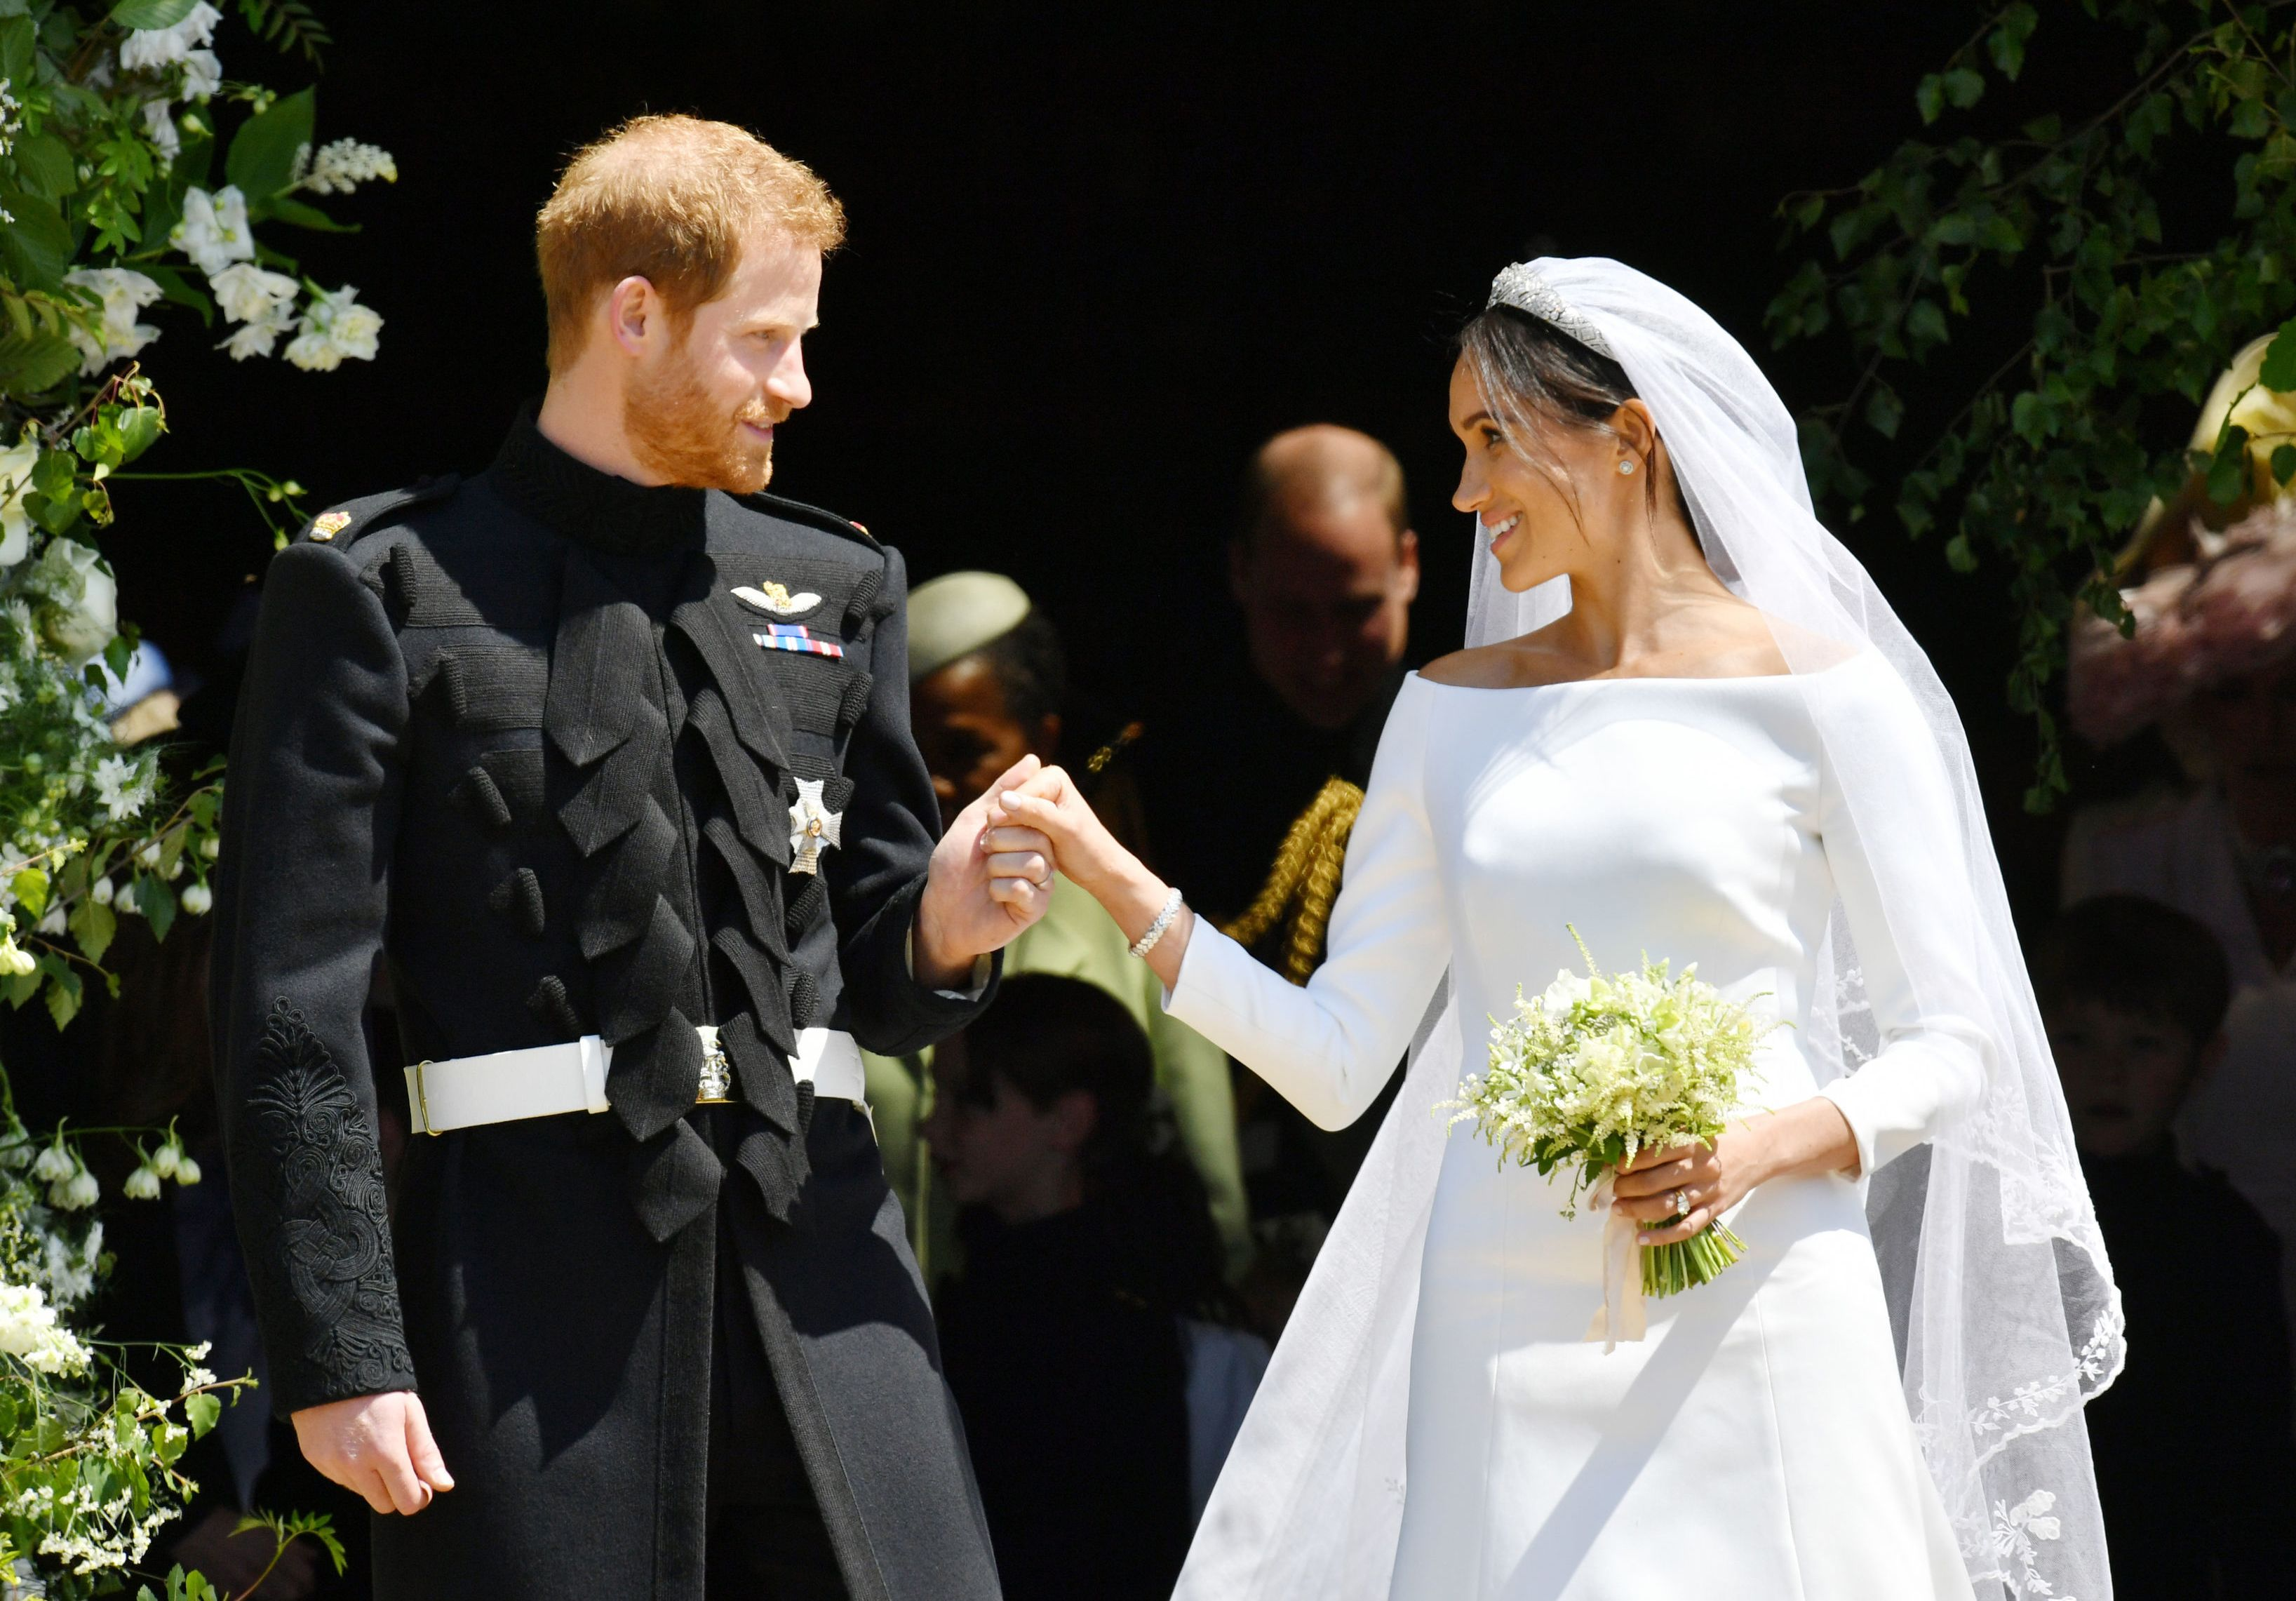 Givenchy Wedding Dress.Meghan Markle S Givenchy Wedding Dress Will Reportedly Be Displayed